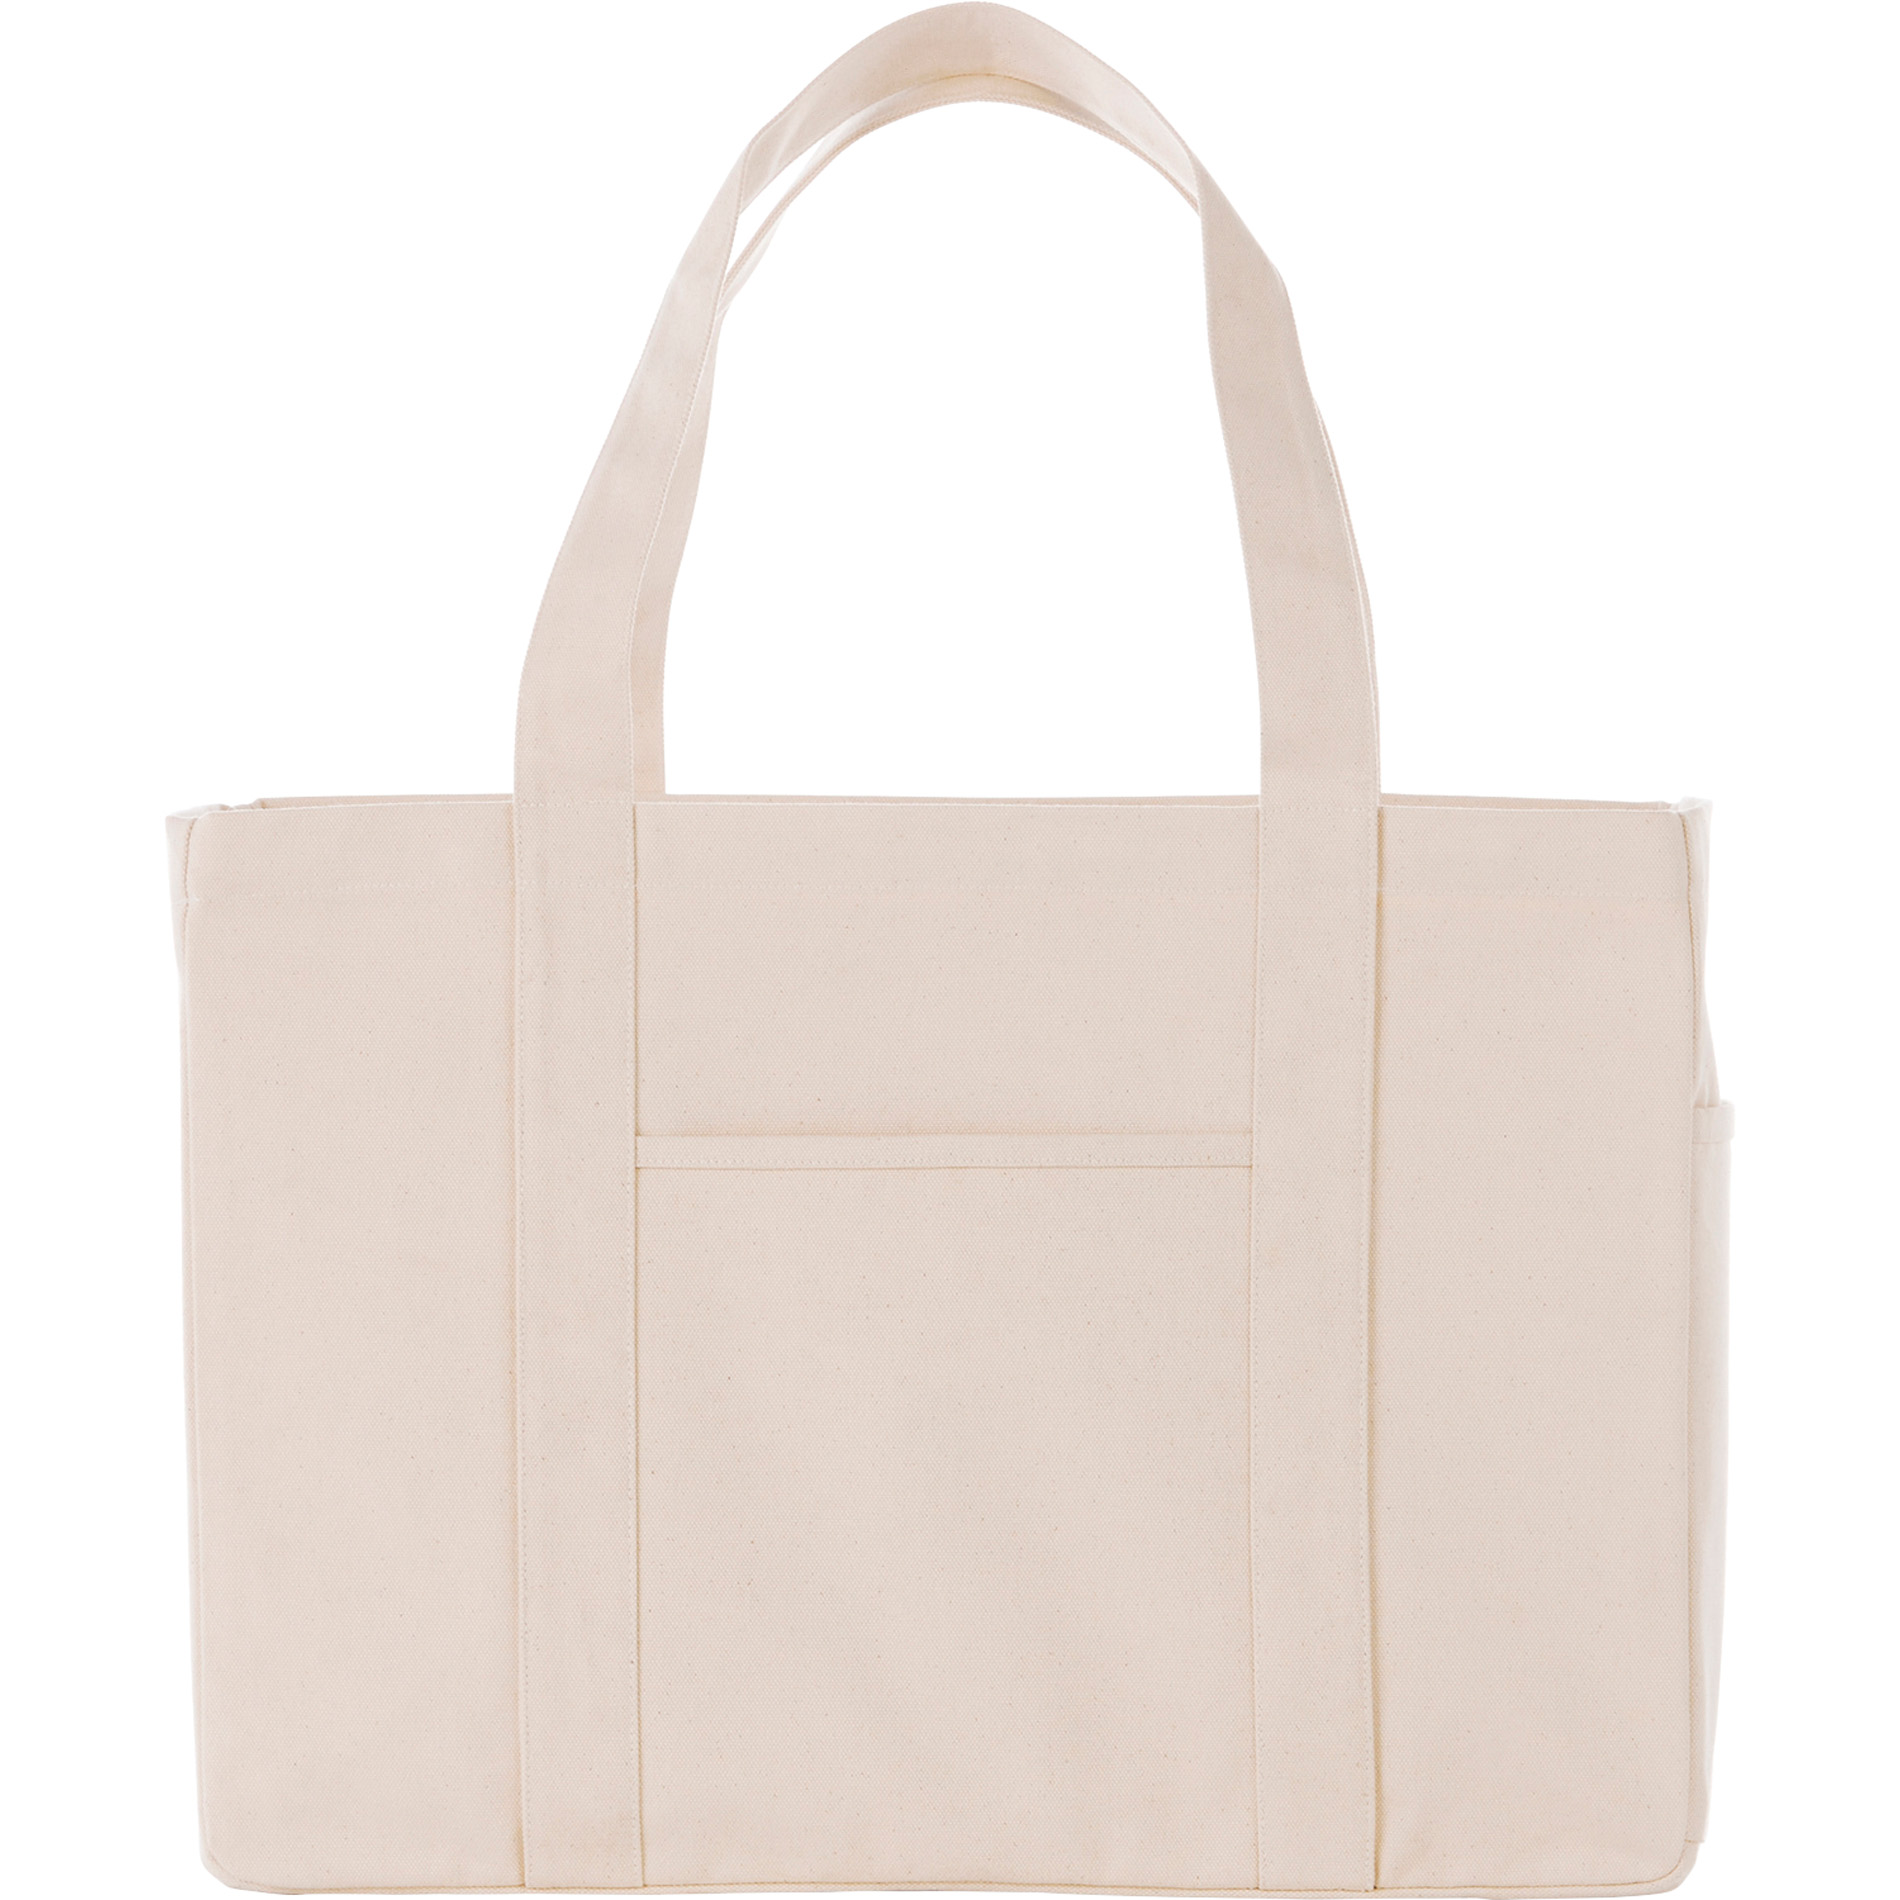 LEEDS 7900-85 - Large 20 oz. Cotton Canvas Utility Tote